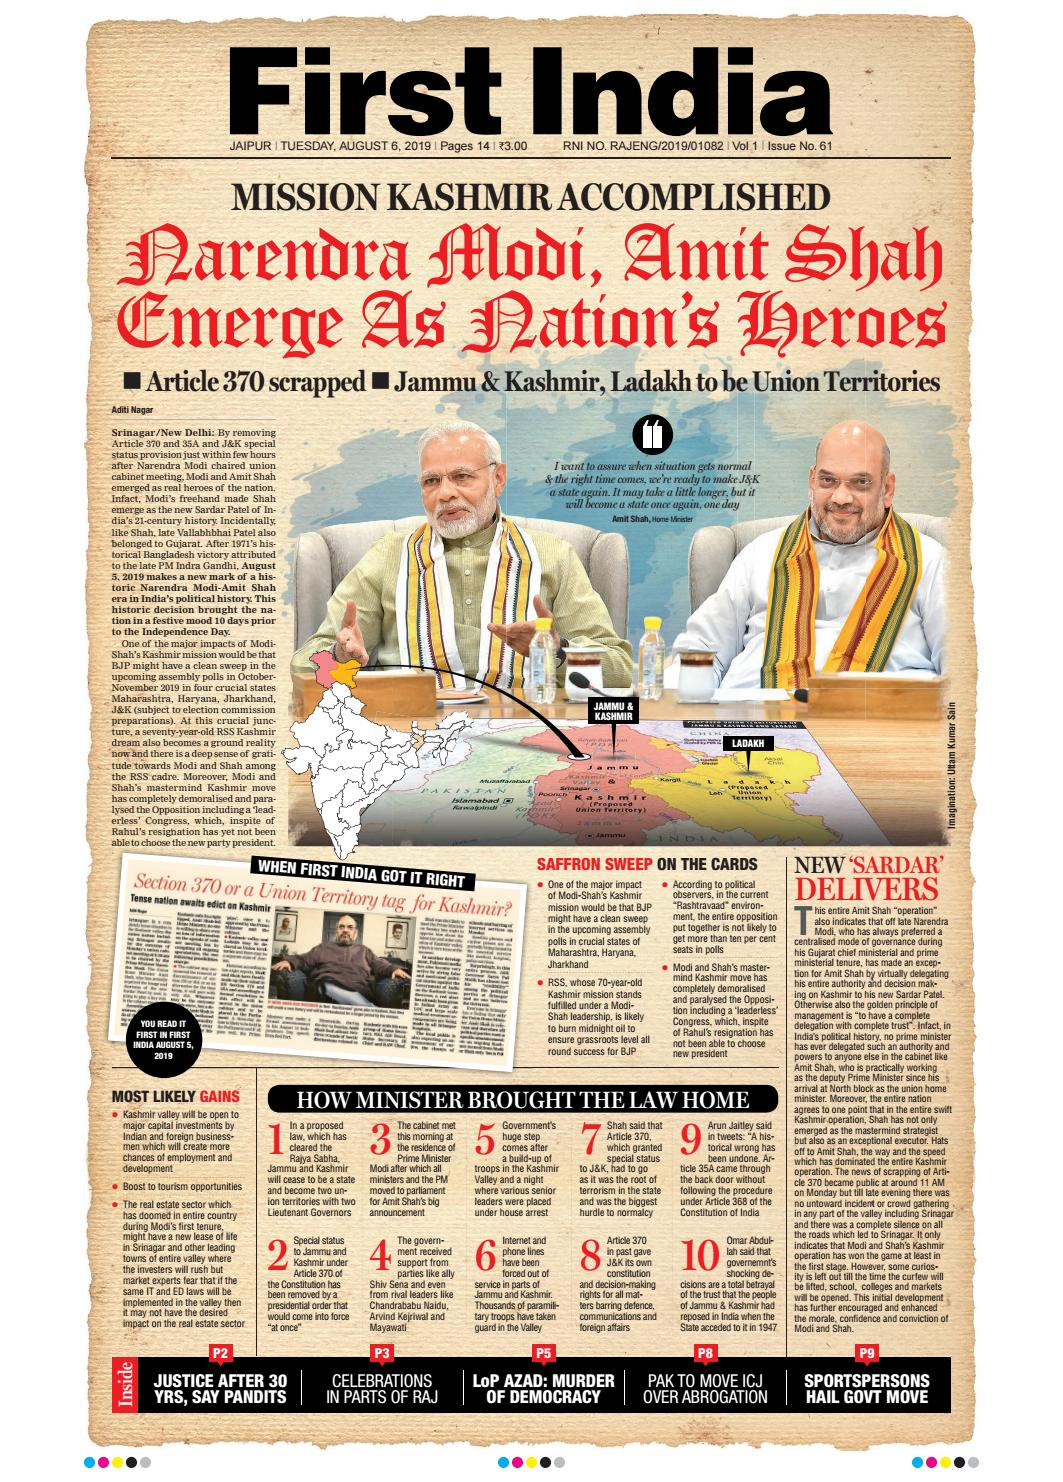 First India Newspaper 06 August 2019 by firstindia - issuu